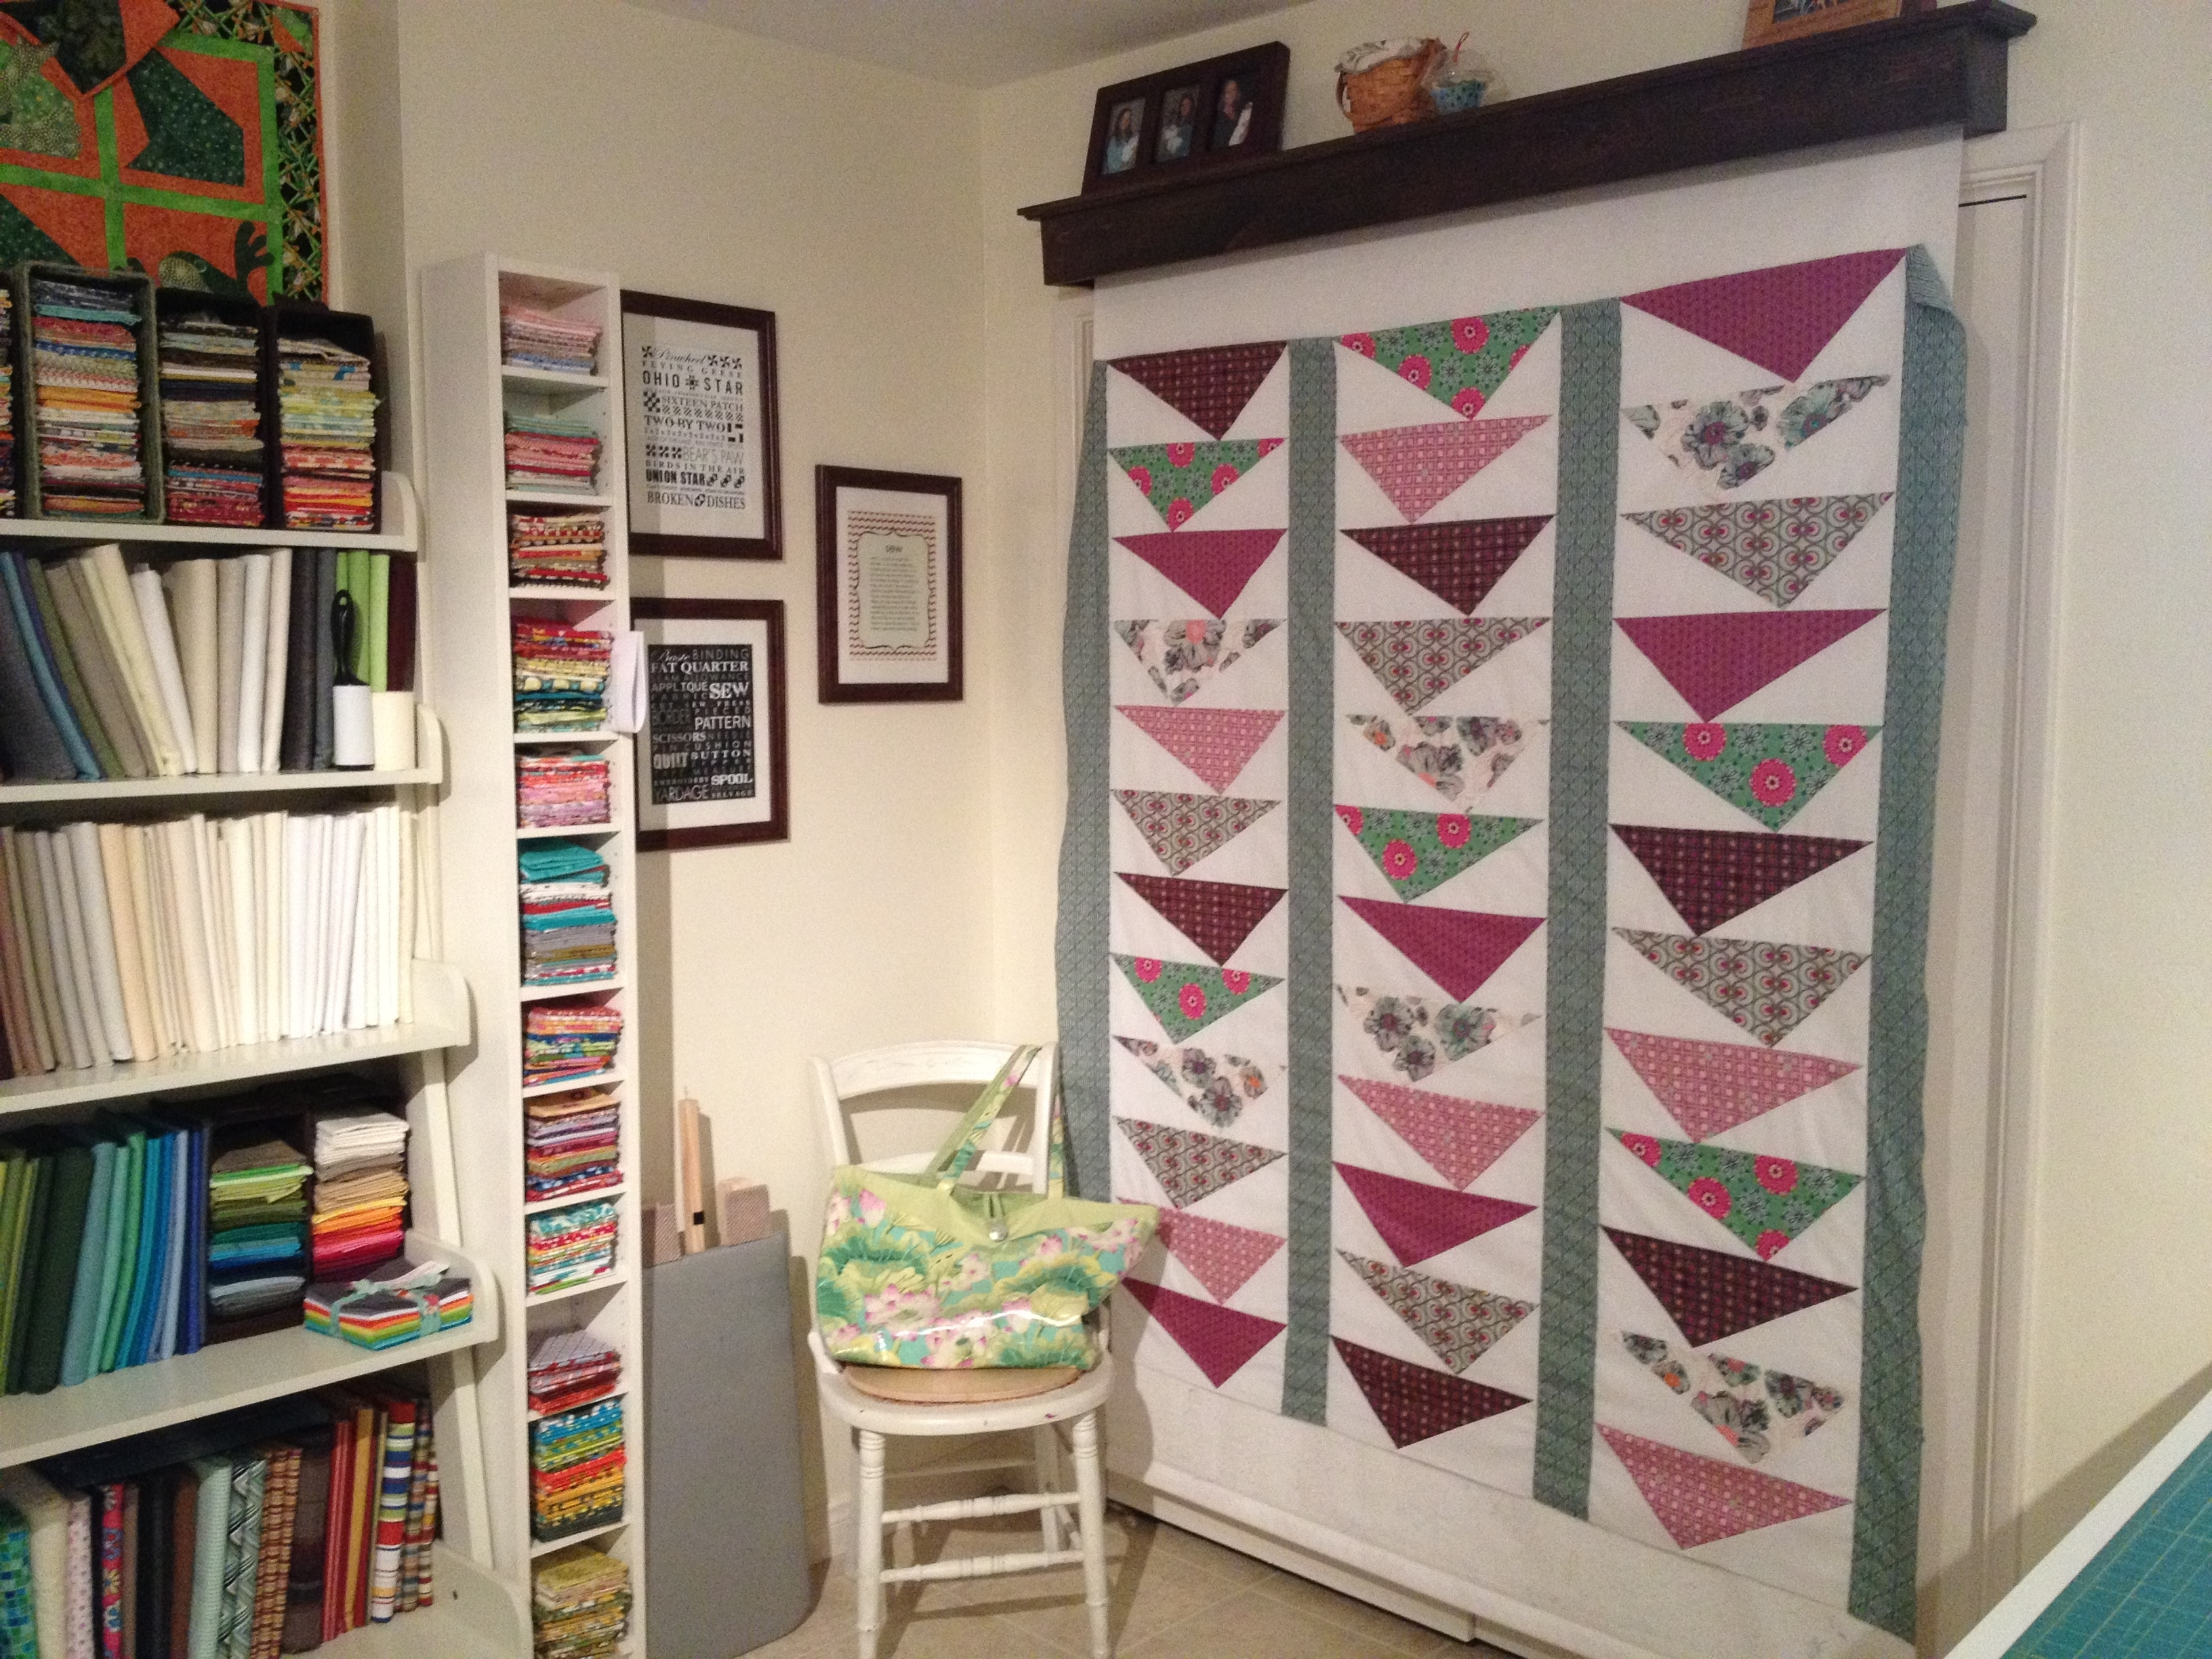 July 11, 2012 – Art Gallery Fabrics – The Creative Blog For Most Current Creative Fabric Wall Art (View 14 of 15)